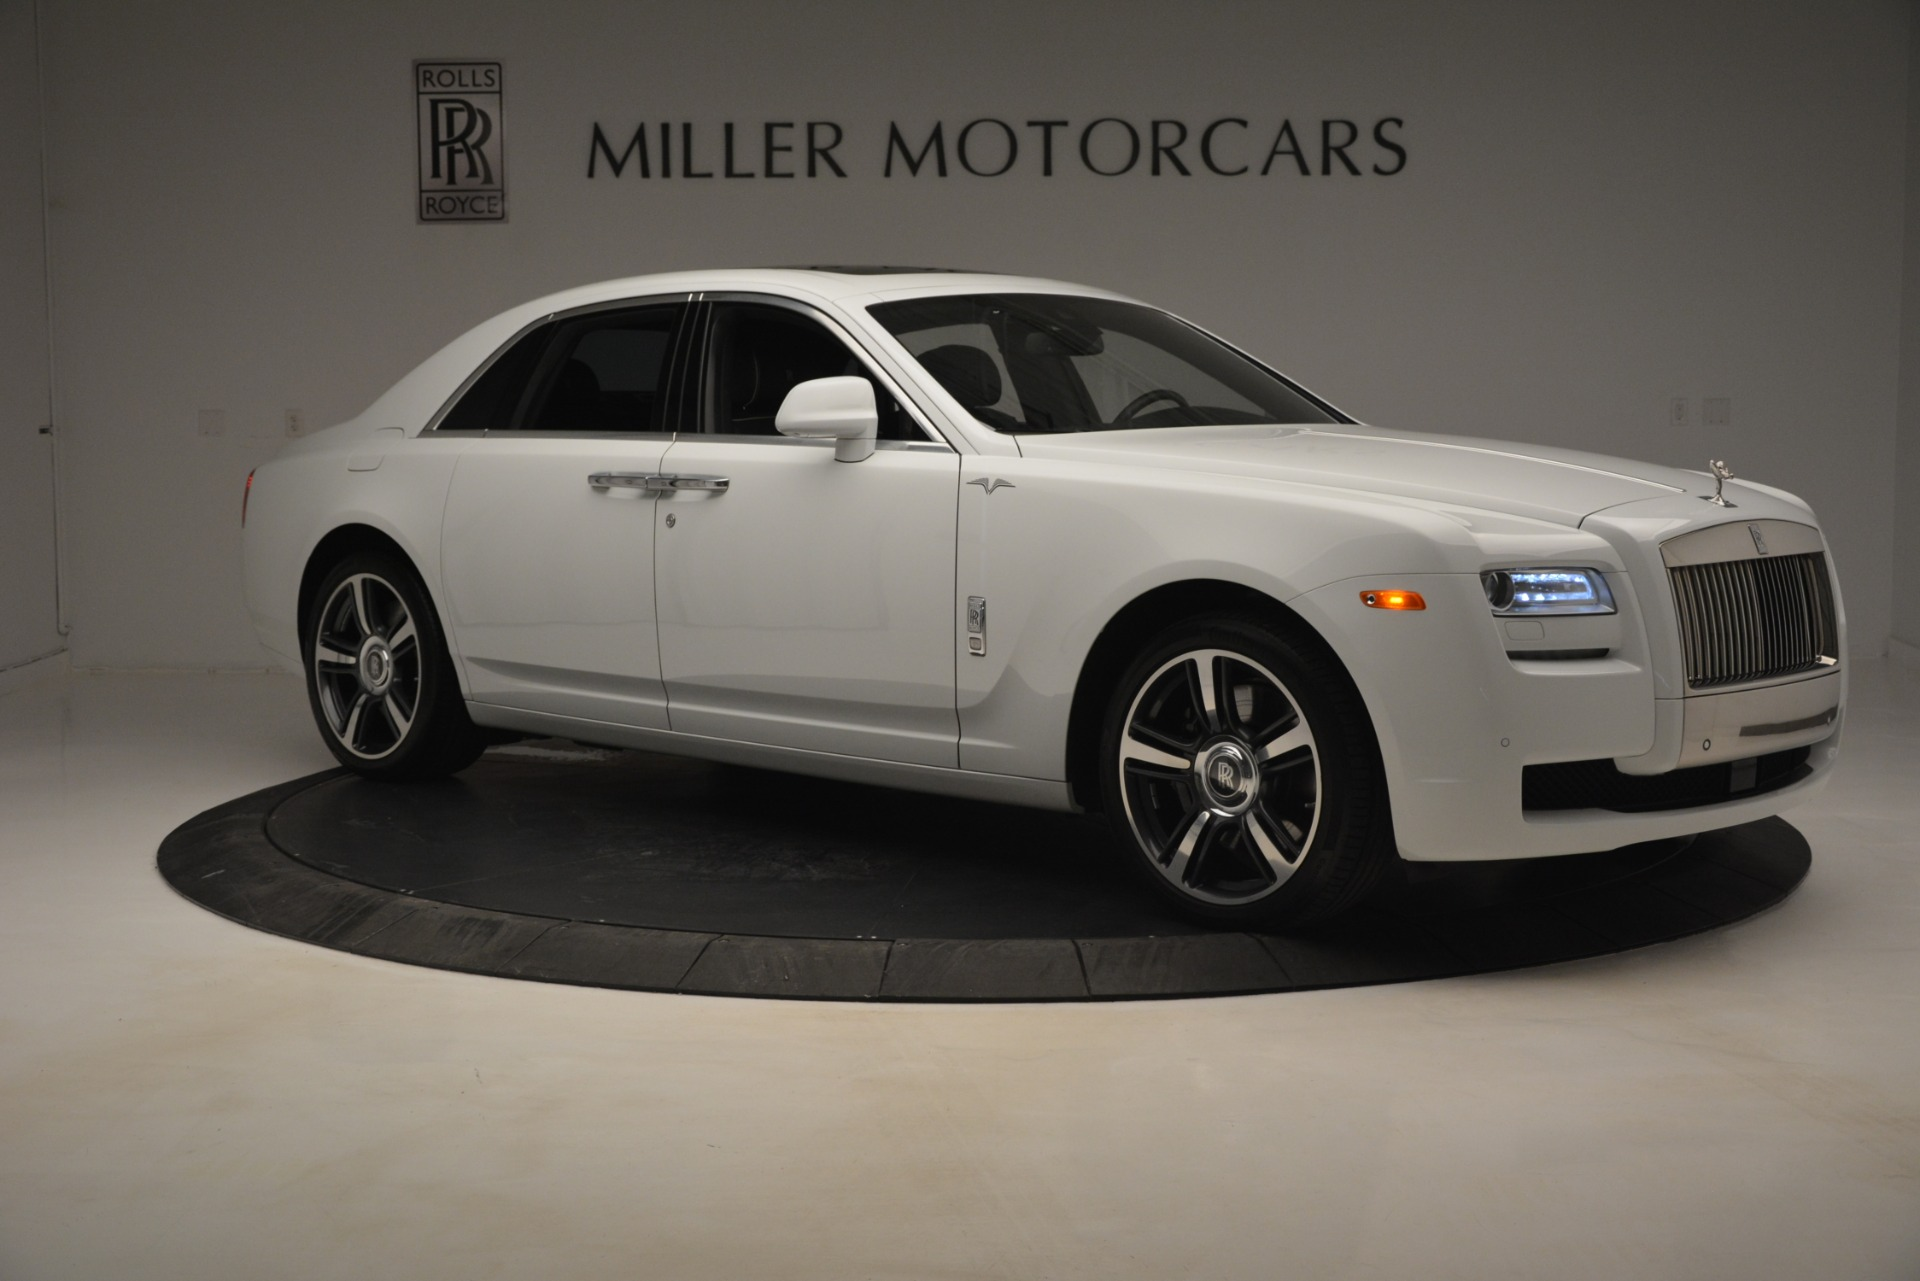 Used 2014 Rolls-Royce Ghost V-Spec For Sale In Greenwich, CT 2989_p10